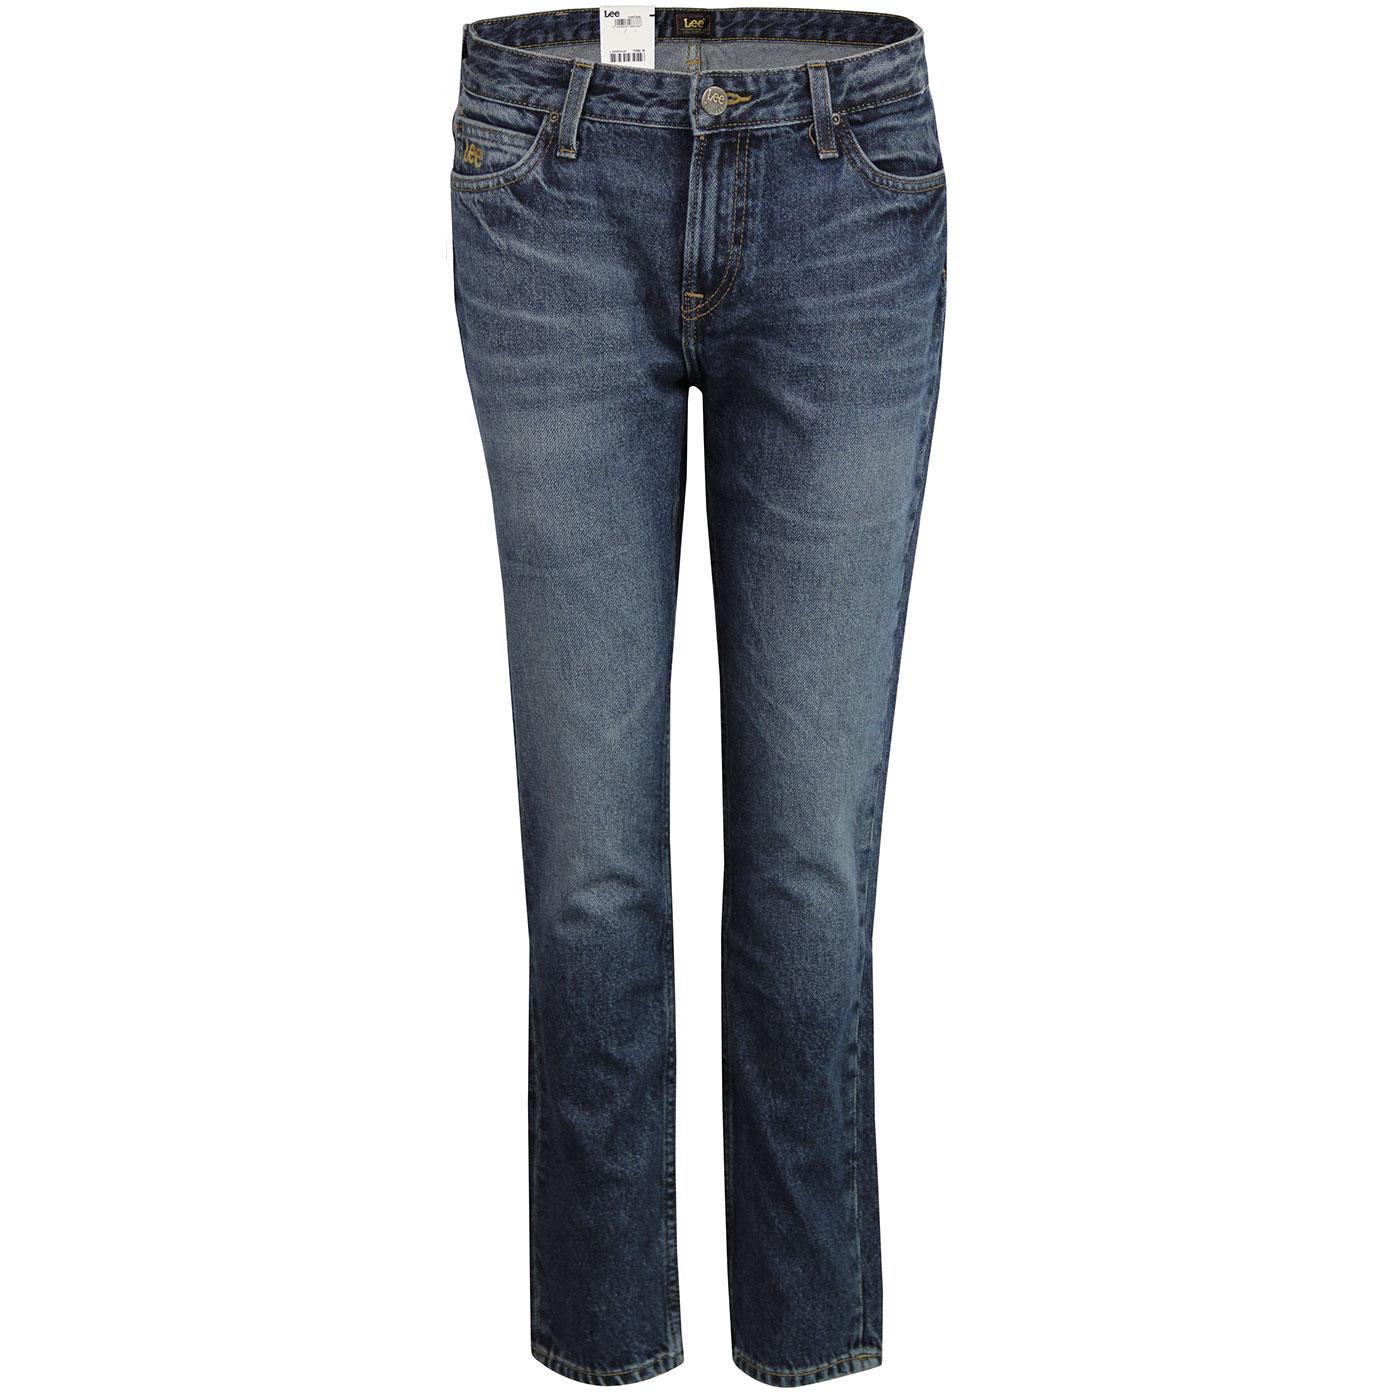 Elly LEE High Waist Slim Straight Denim Jeans (RW)